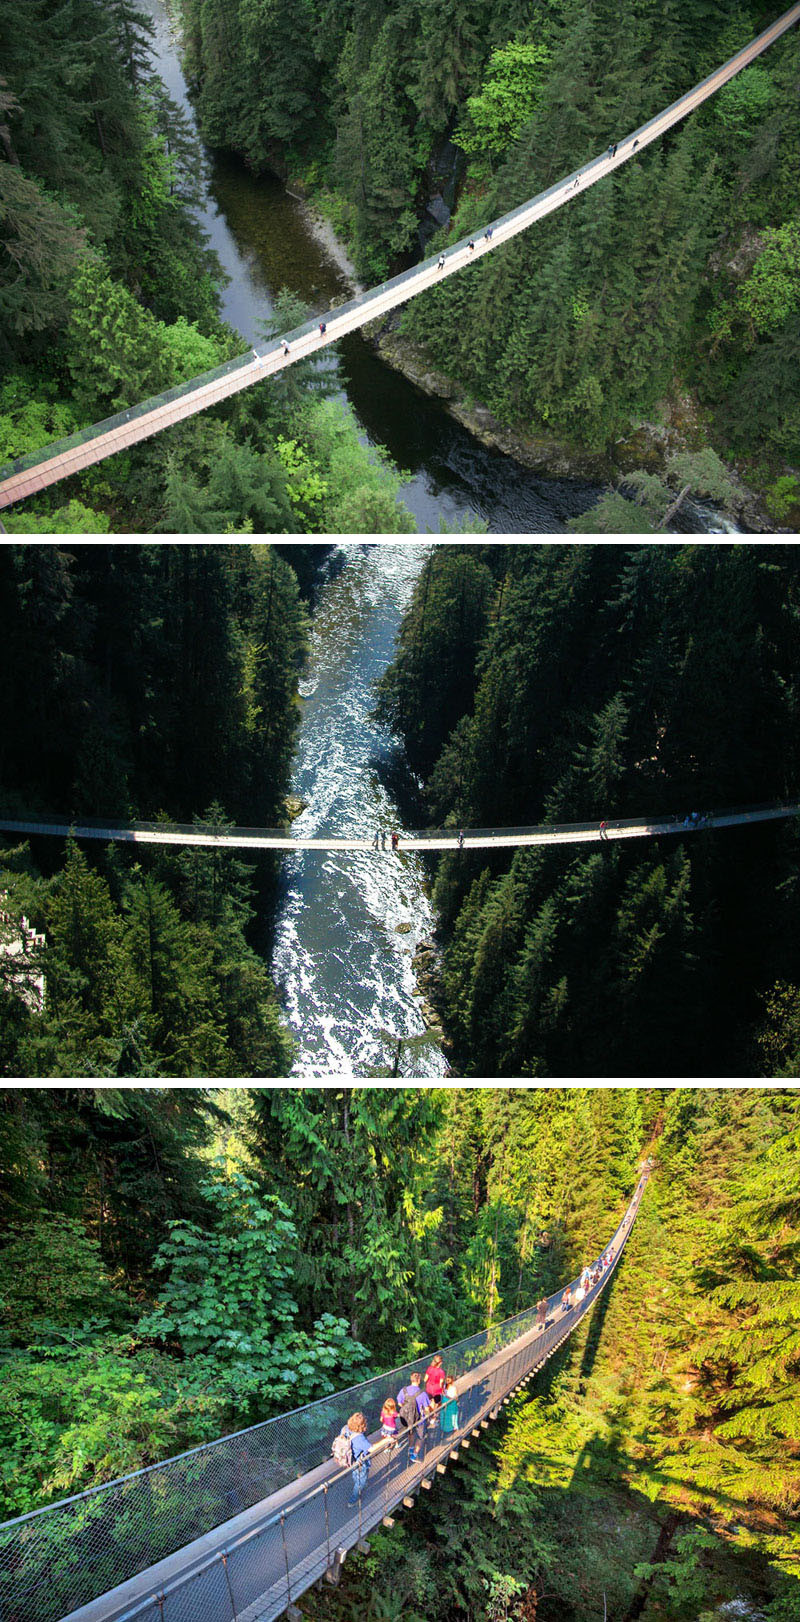 10 Of The Most AMAZING Suspension Bridges In The World // The Capilano suspension bridge in North Vancouver, Canada, is a must see when you're in the city.